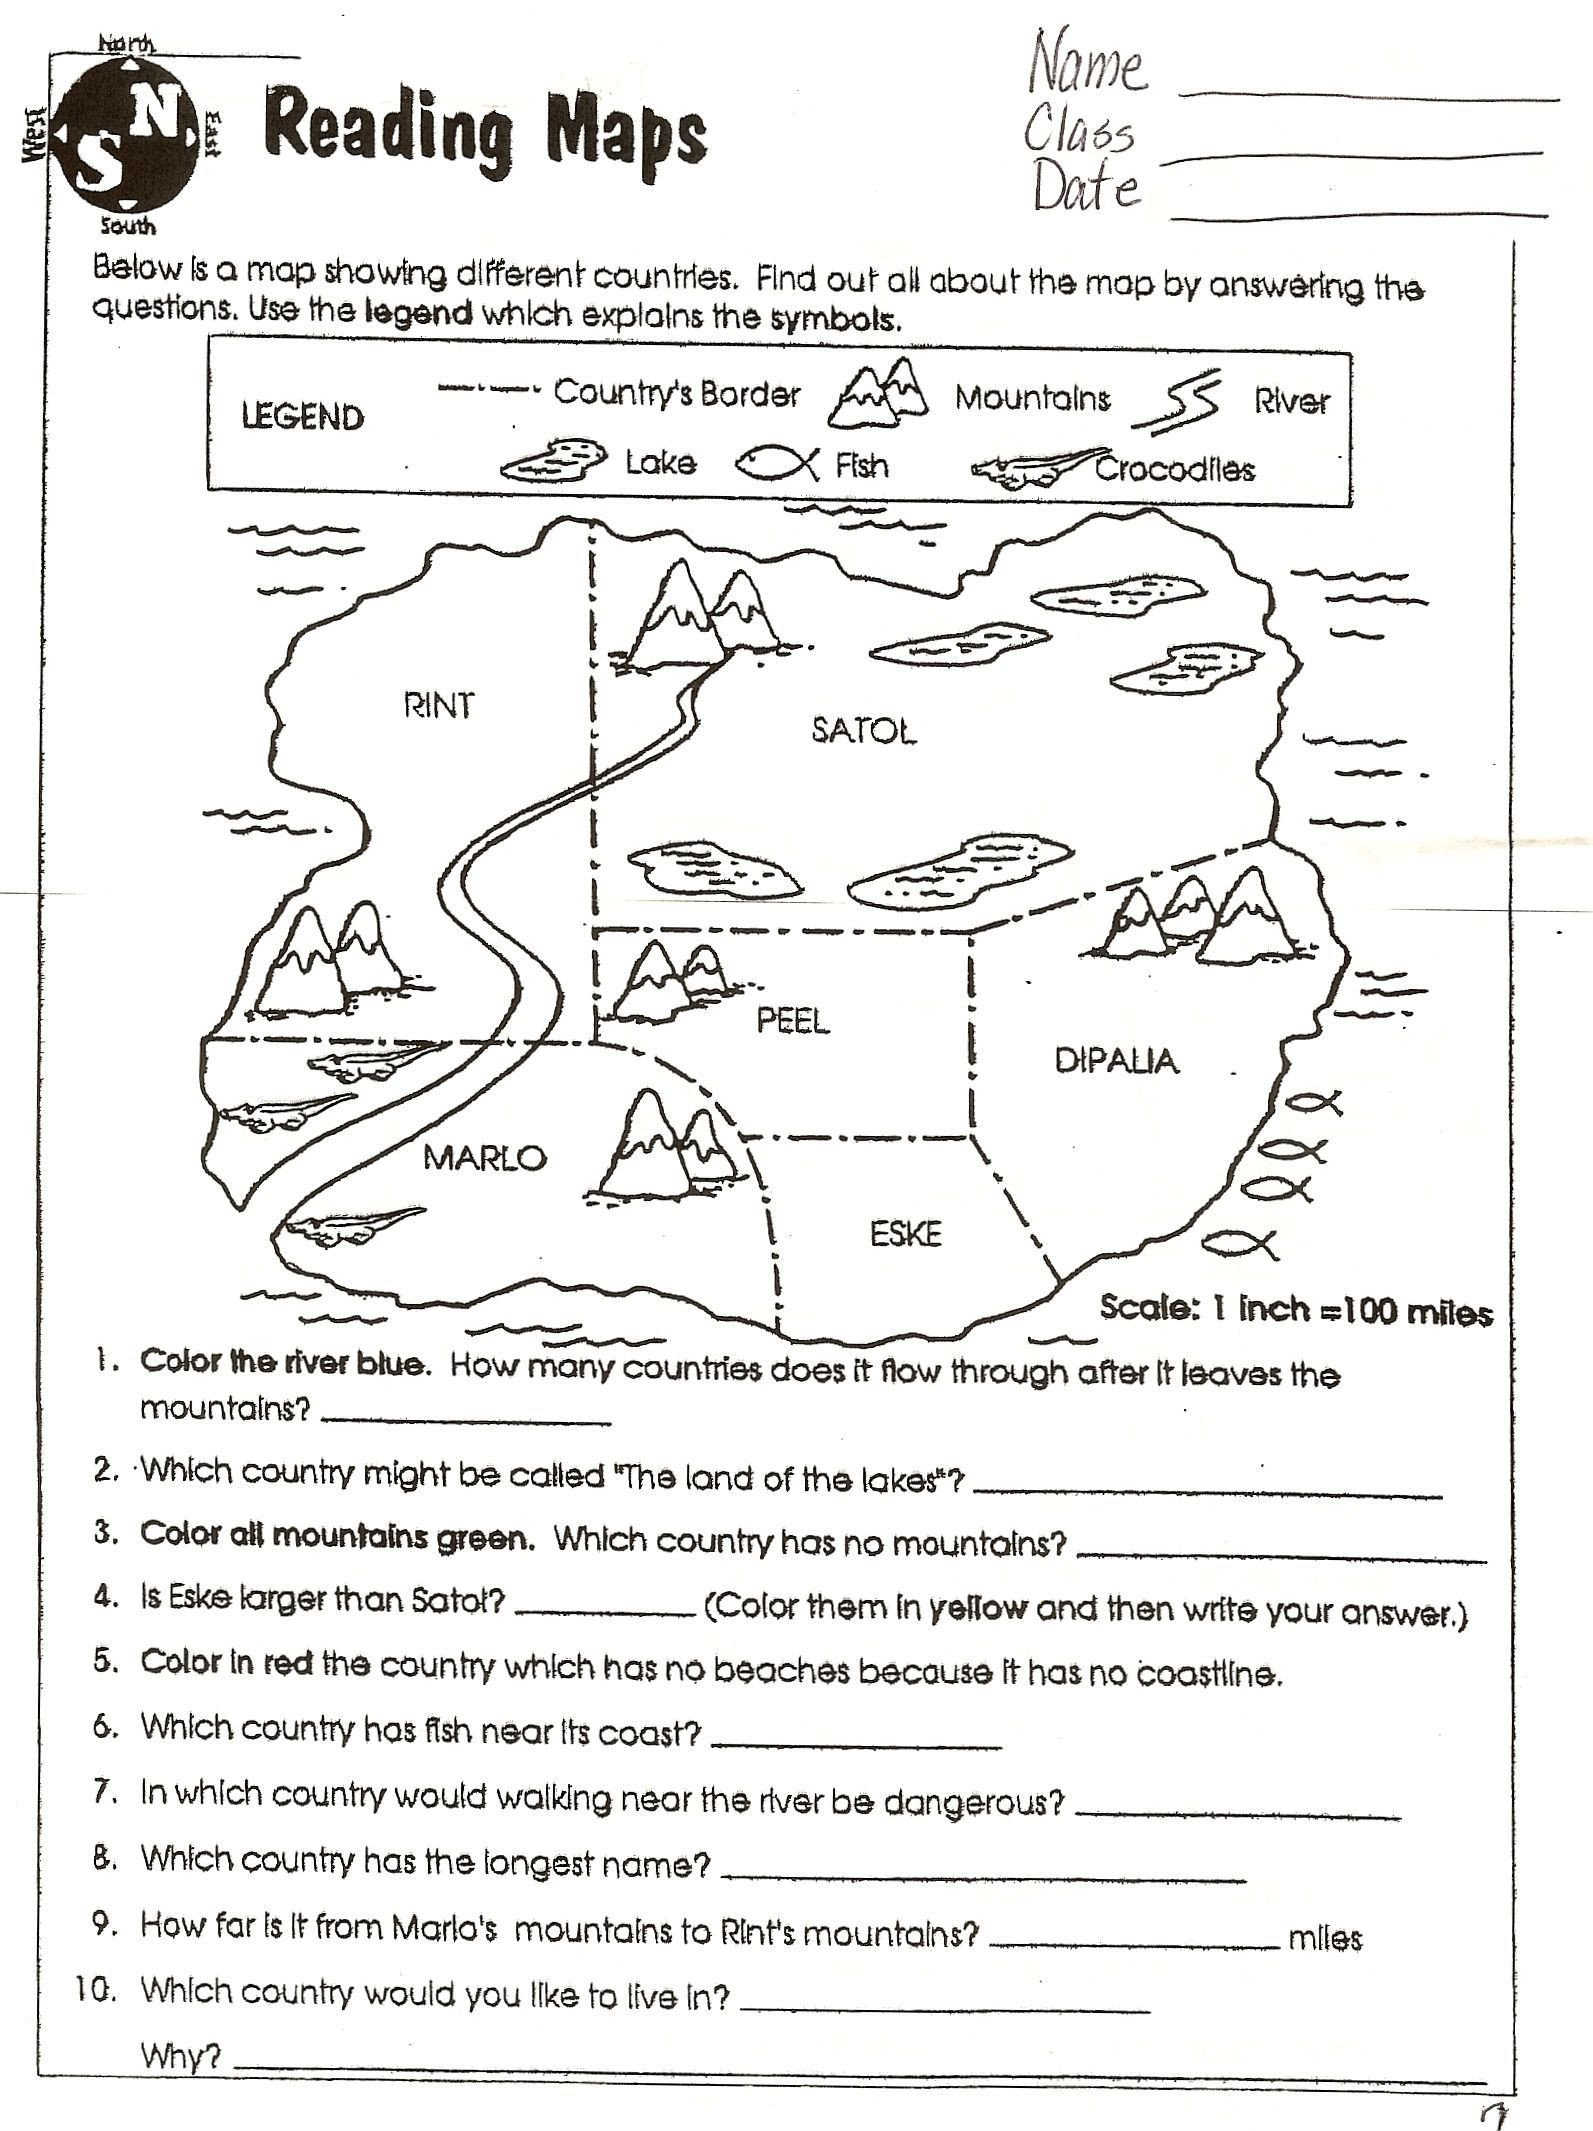 Inference Worksheets for 4th Grade Worksheets Worksheet Ideas 4th Grade Reading Prehension